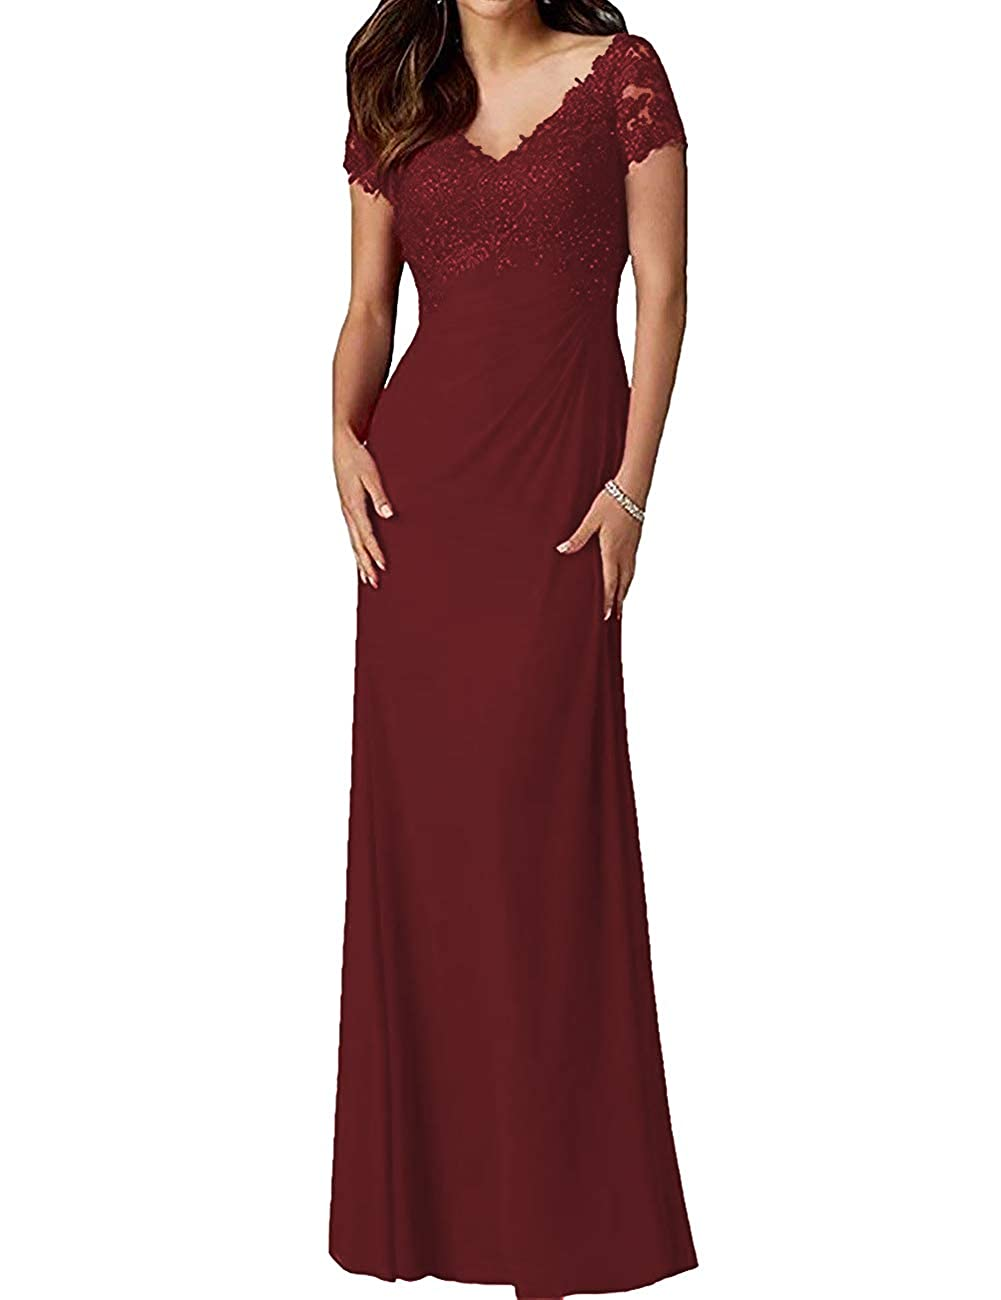 Dark Burgundy H.S.D Mother of The Bride Dresses Lace Formal Gowns Long Evening Dresses Short Sleeve